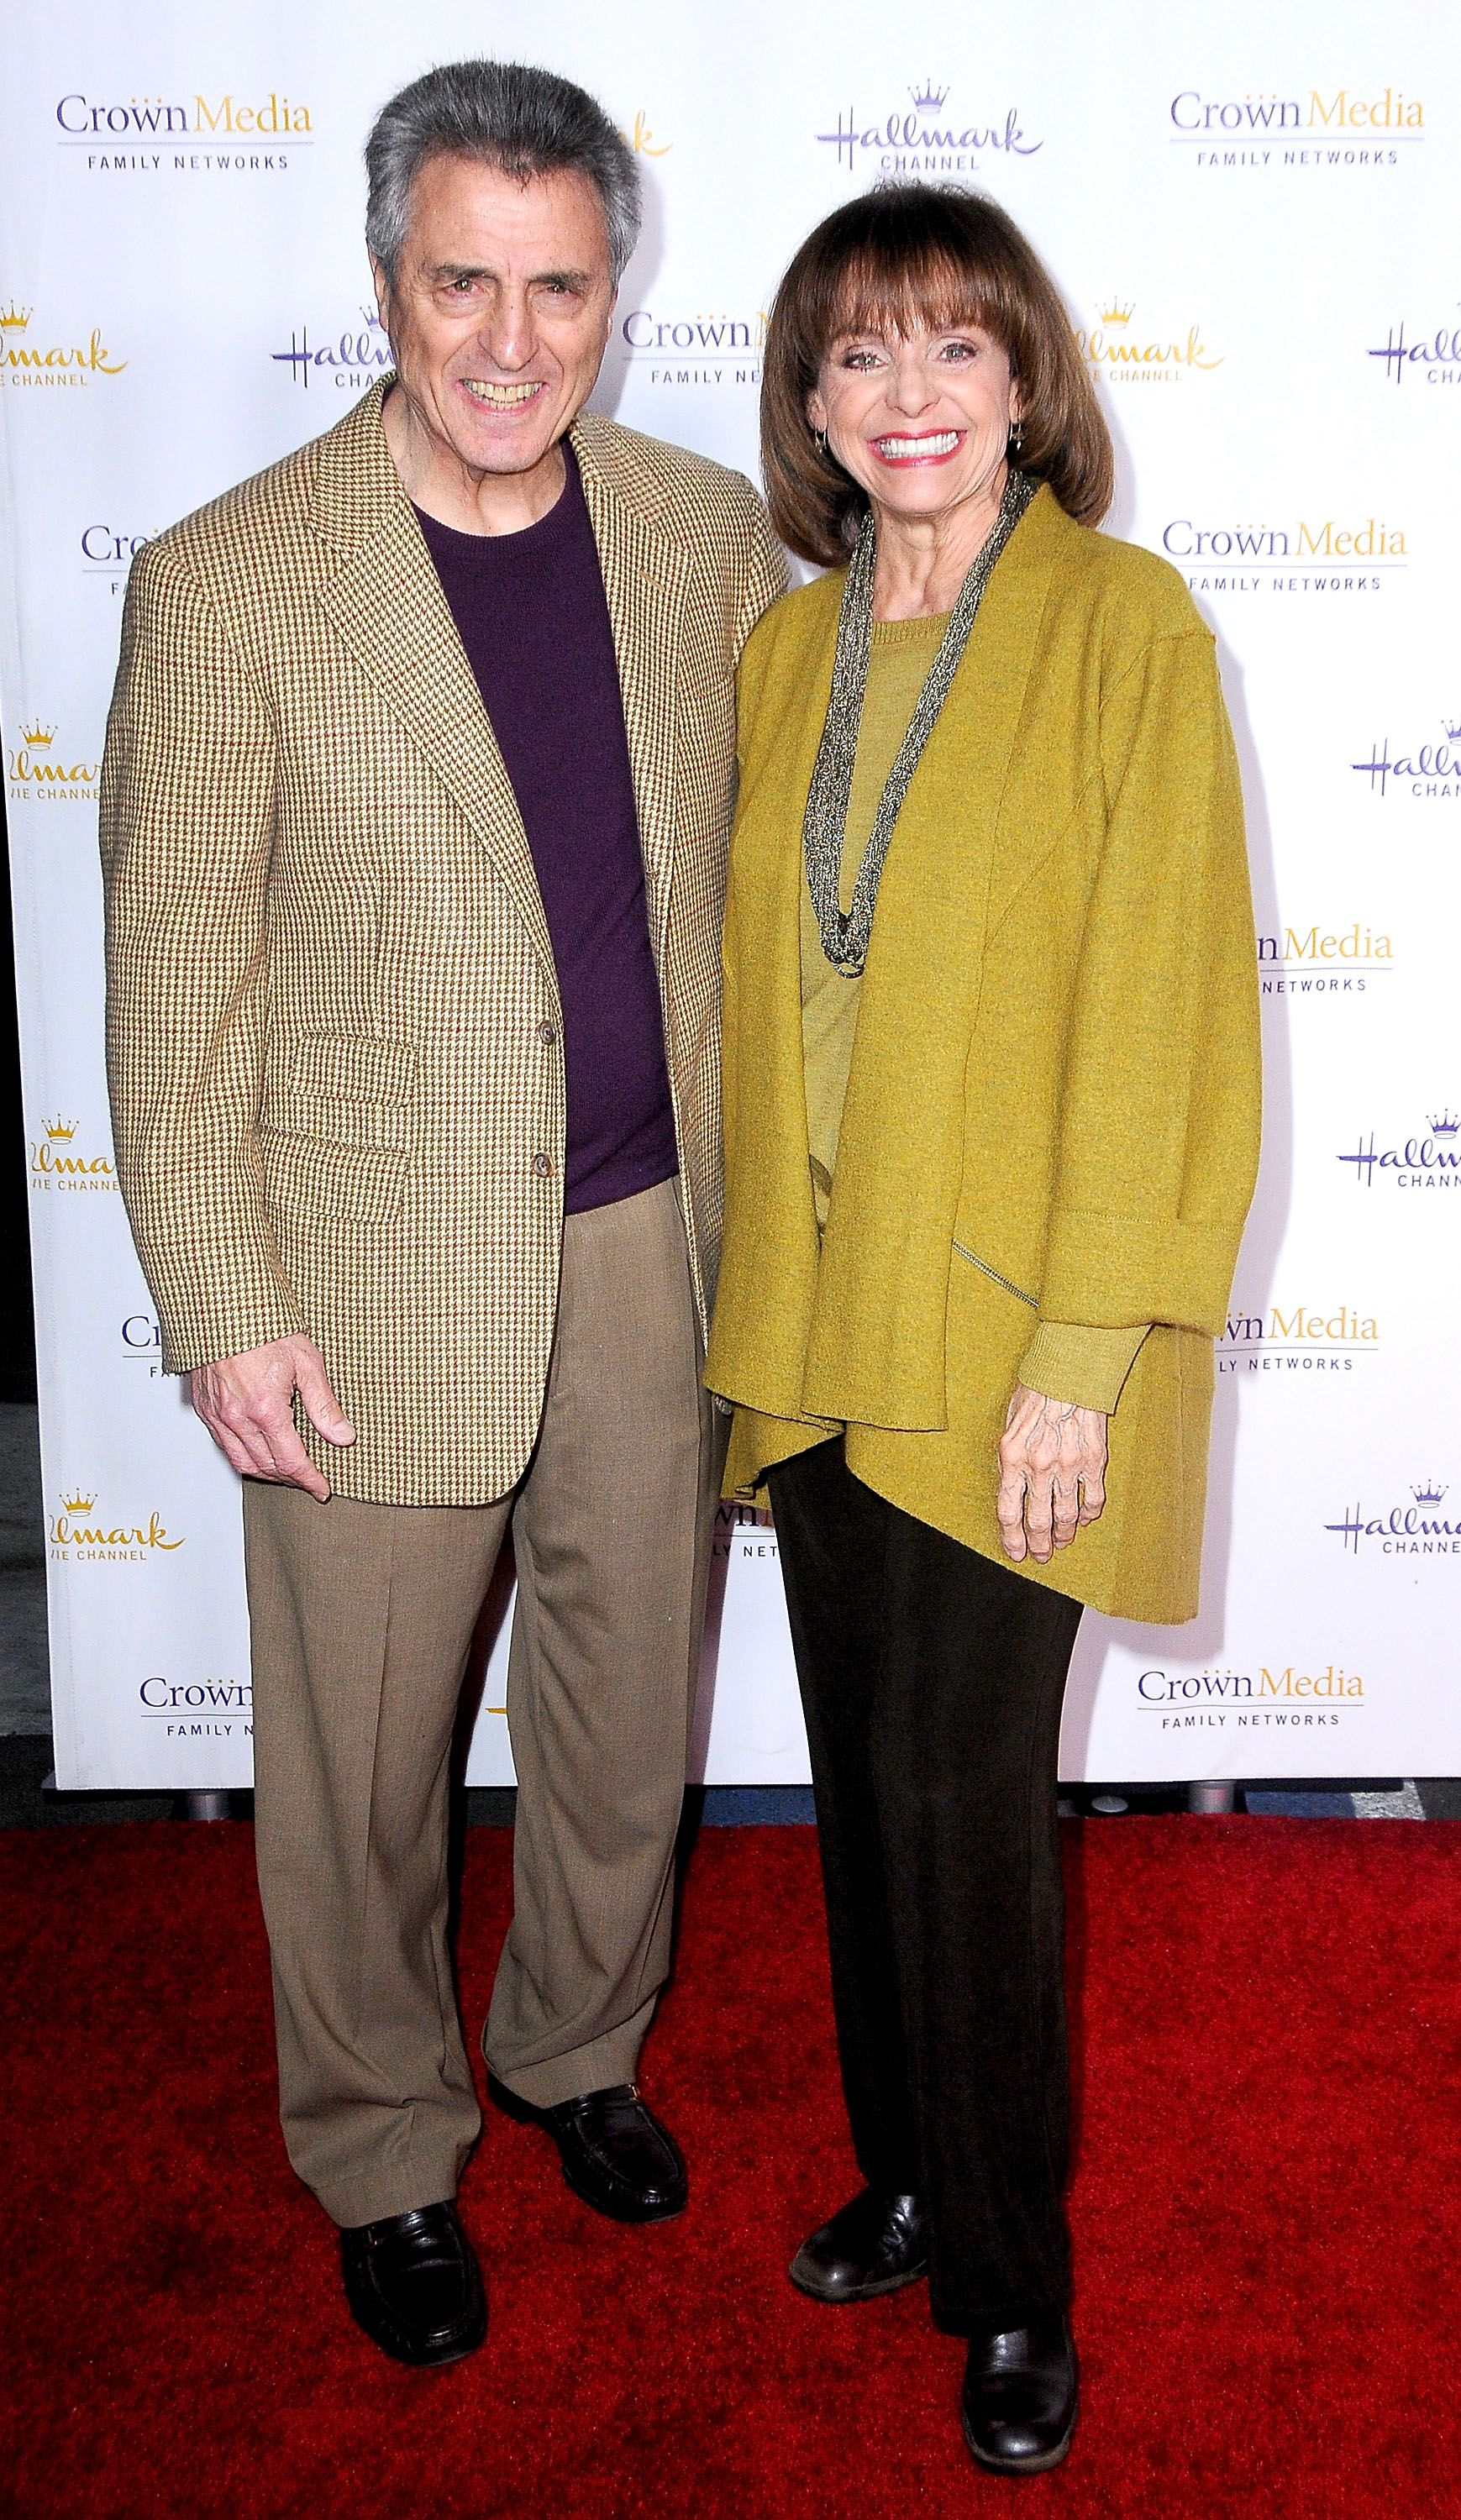 Valerie Harper Says Her Husband of 30 Years Is Her Secret to Surviving Fatal Cancer Diagnosis